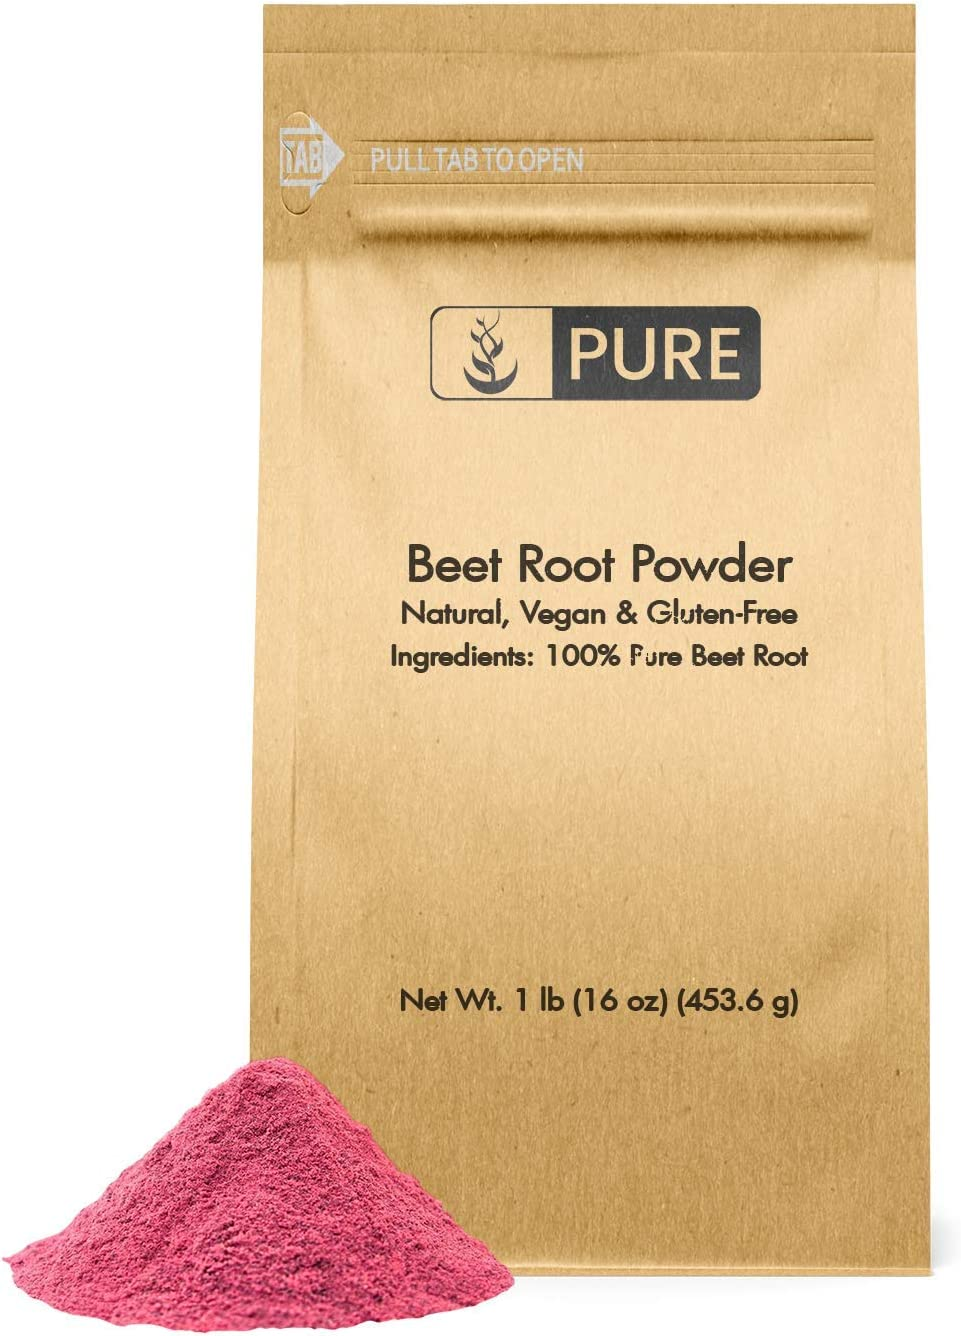 Natural Beet Root Powder, 1lb, 3500 mg Serving, No Fillers, Vegan, Gluten-Free, Naturally Made in USA, Pure & Potent, Beet Root Extract with No Additives, Eco-Friendly Packaging